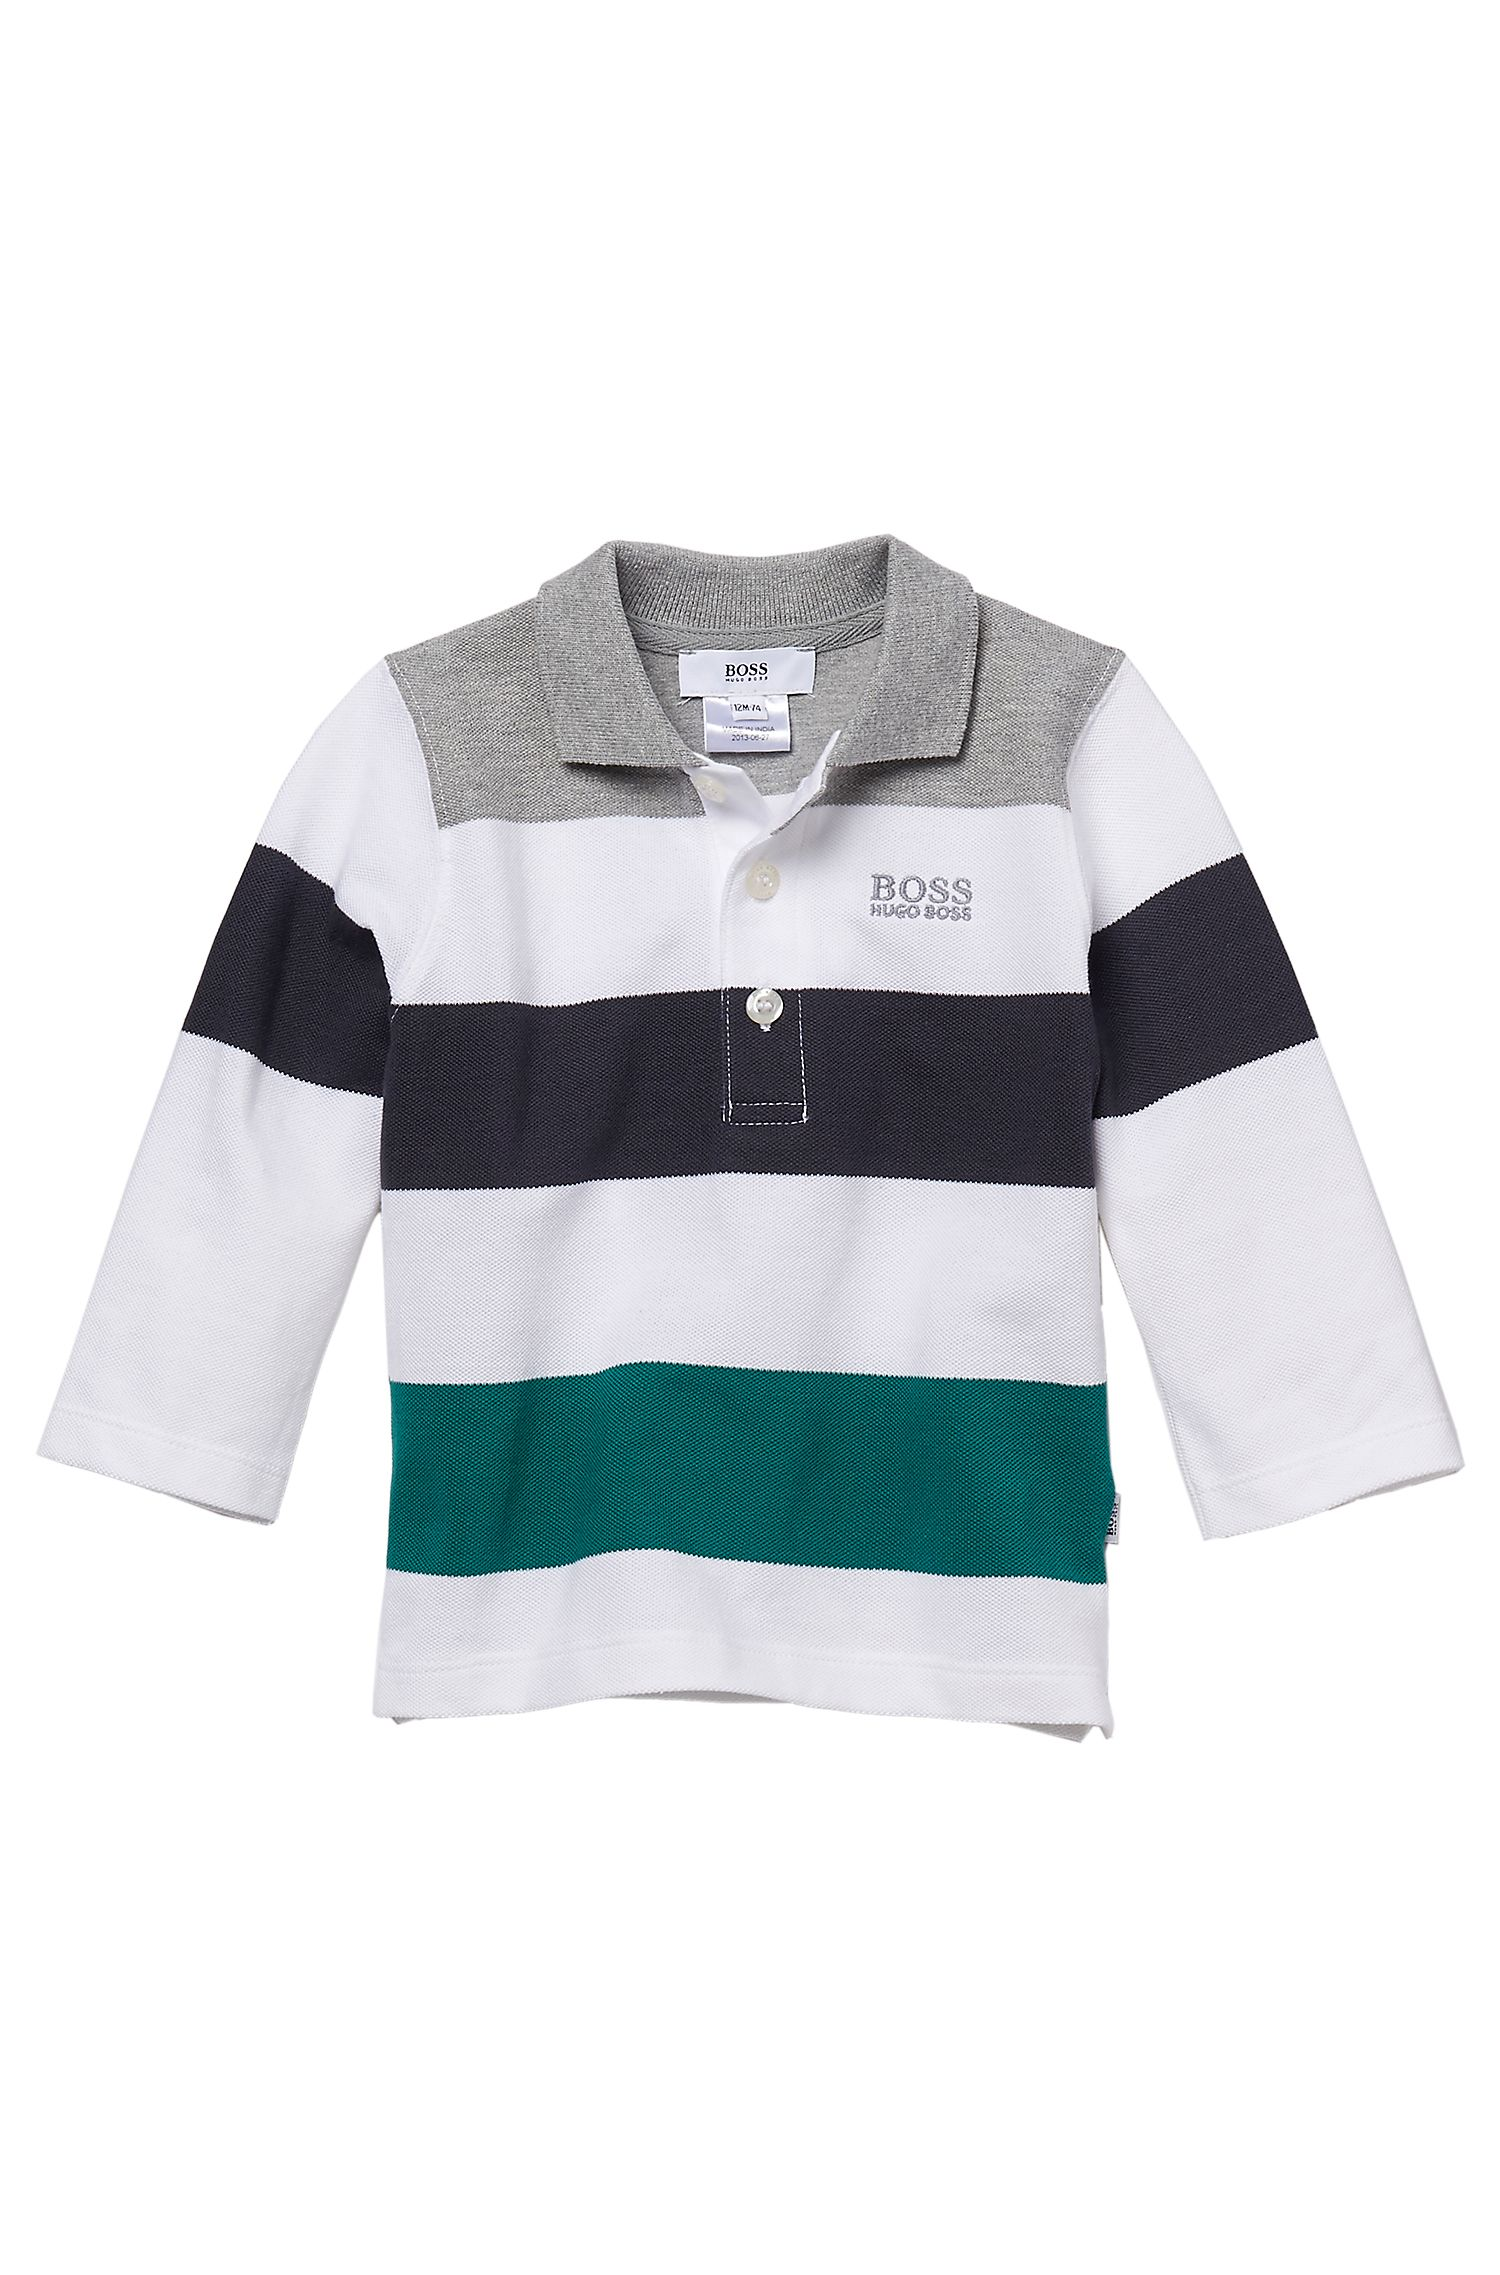 'J05261' | Toddler Long-Sleeved Stretch Cotton Color blocked Polo Shirt